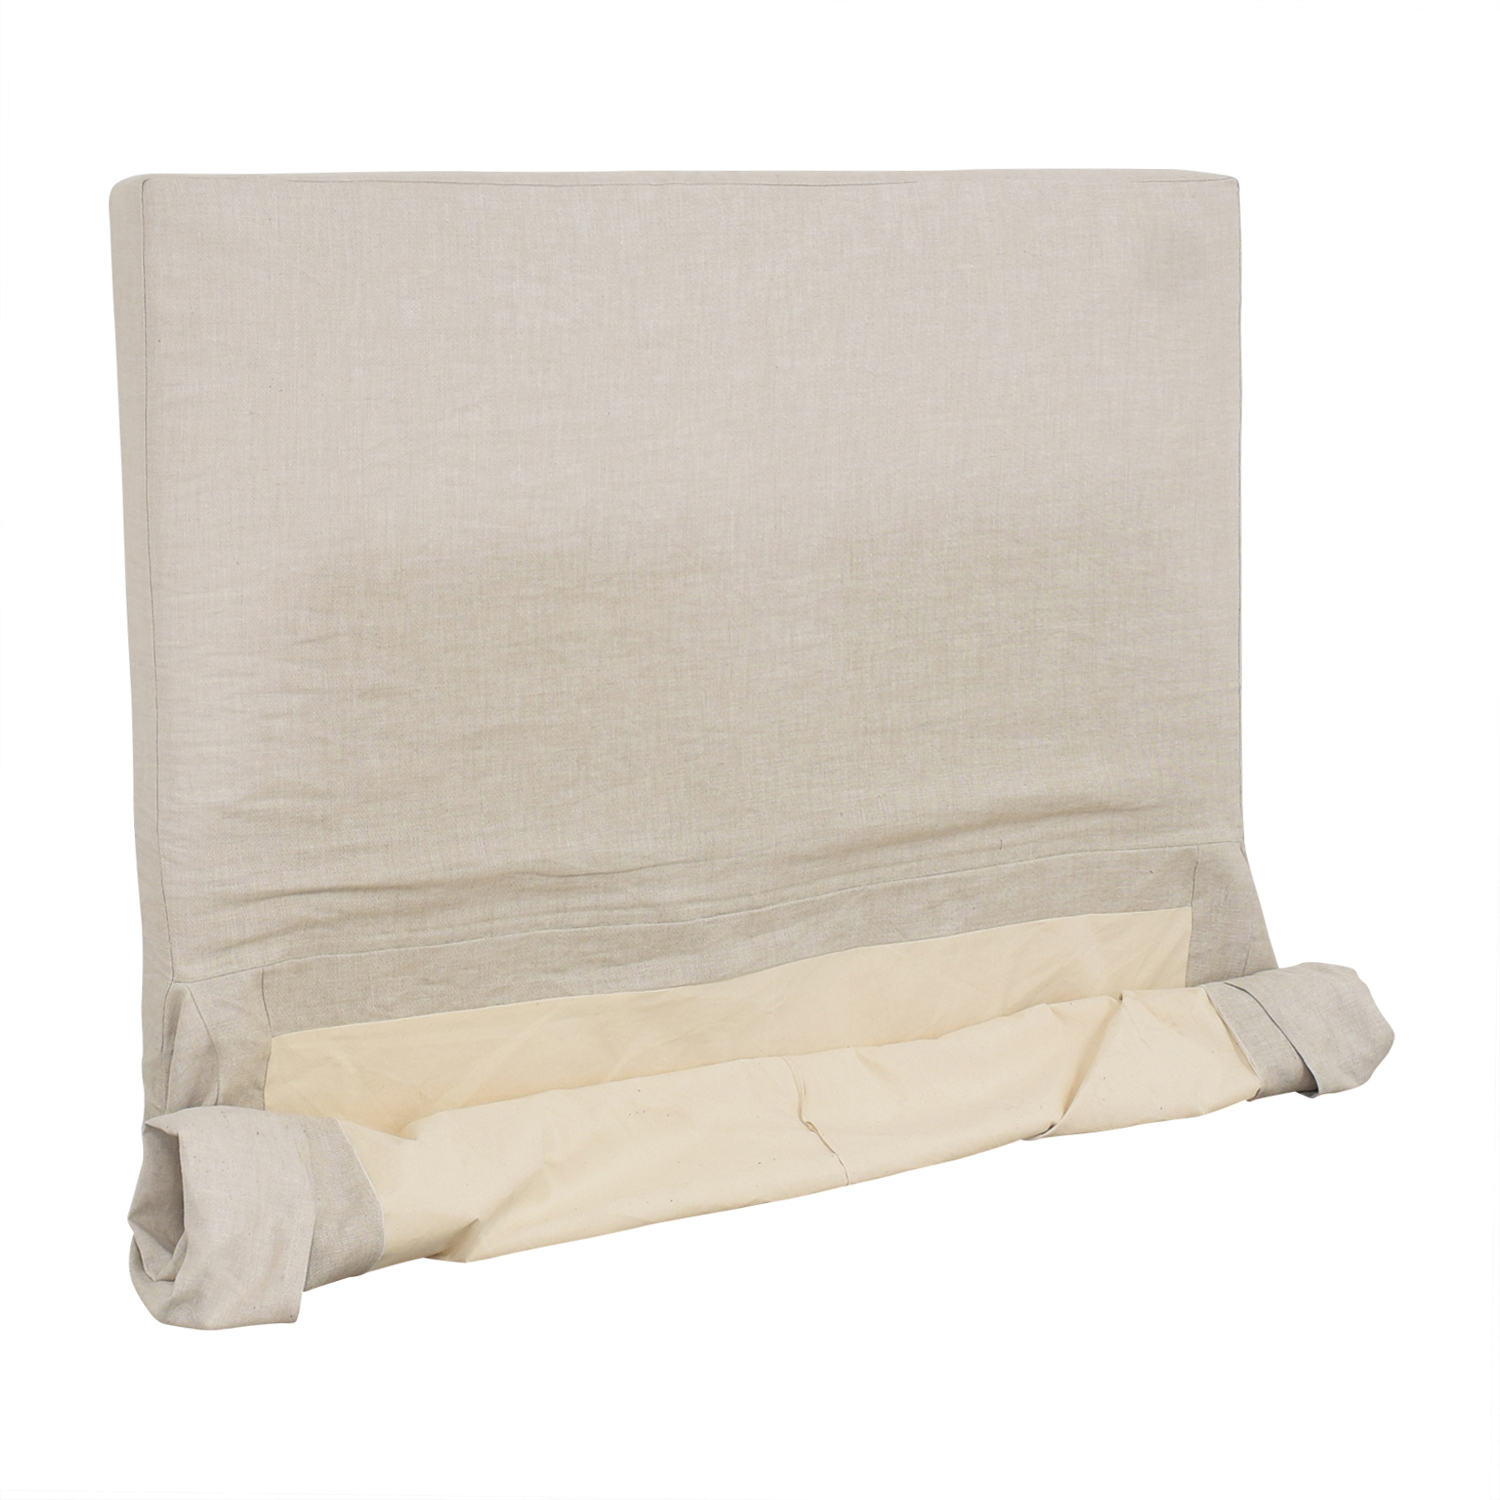 Restoration Hardware Restoration Hardware Parsons Slipcovered King Headboard with Bed Skirt second hand